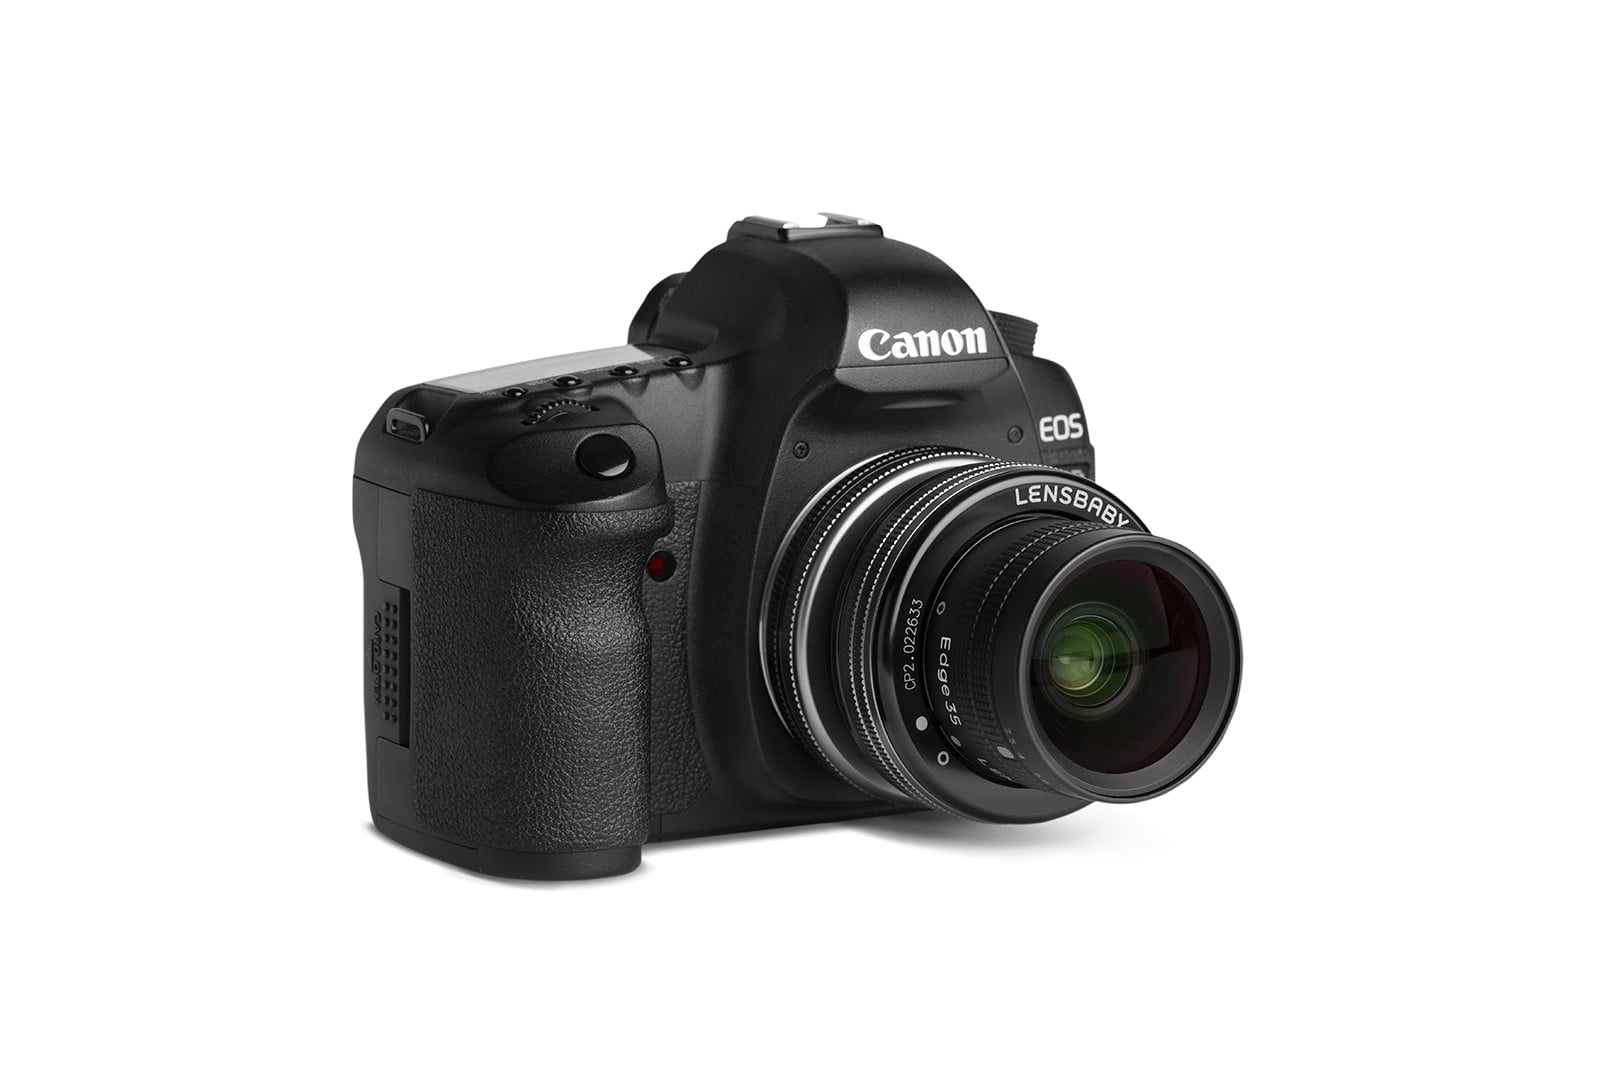 lensbaby composer pro ii with edge 35 announced cpiie35 on canon highres